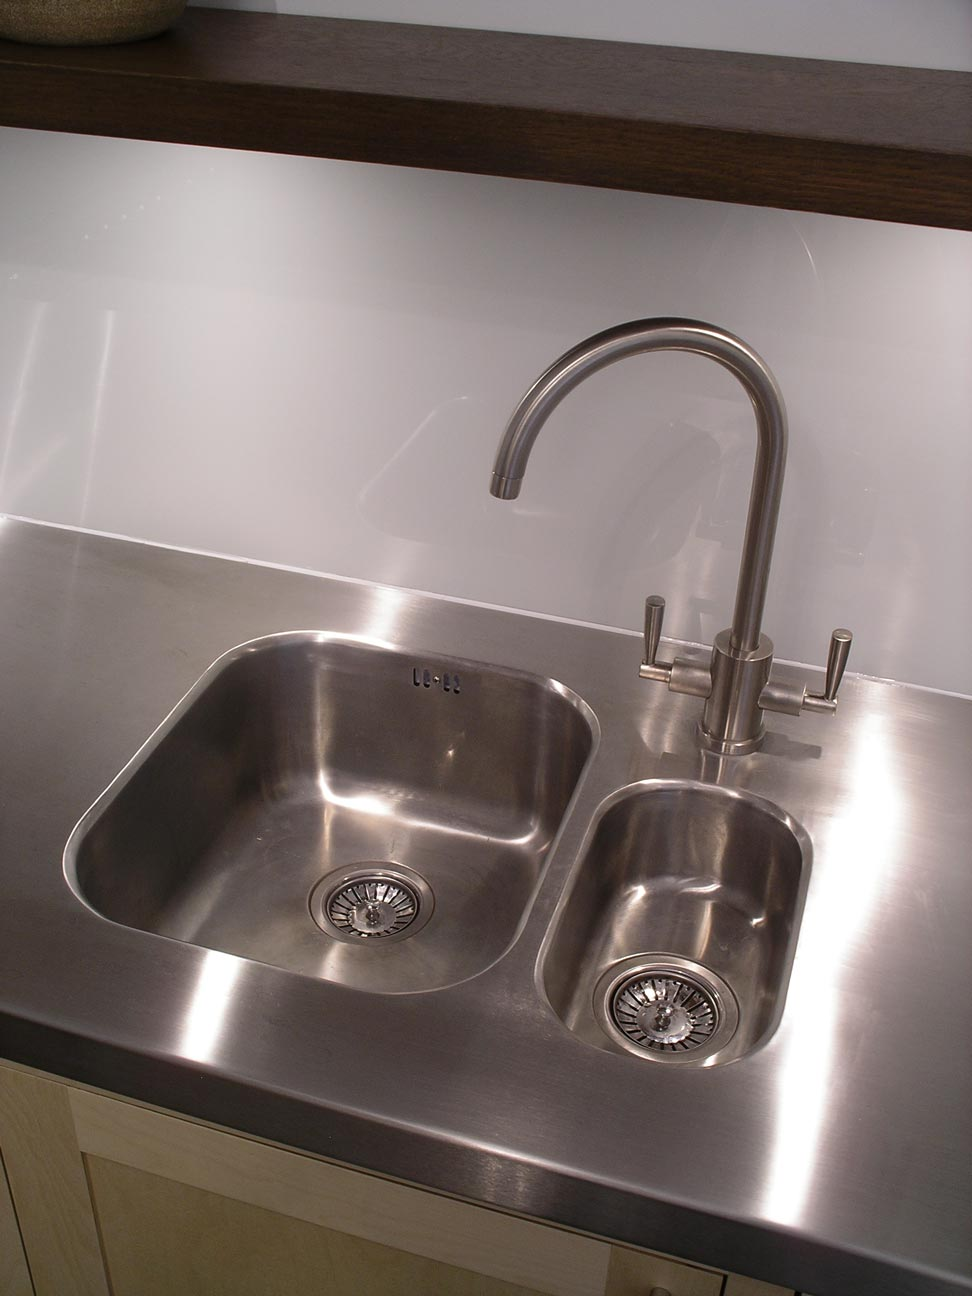 undermounted sinks is welded to the stainless steel worktop